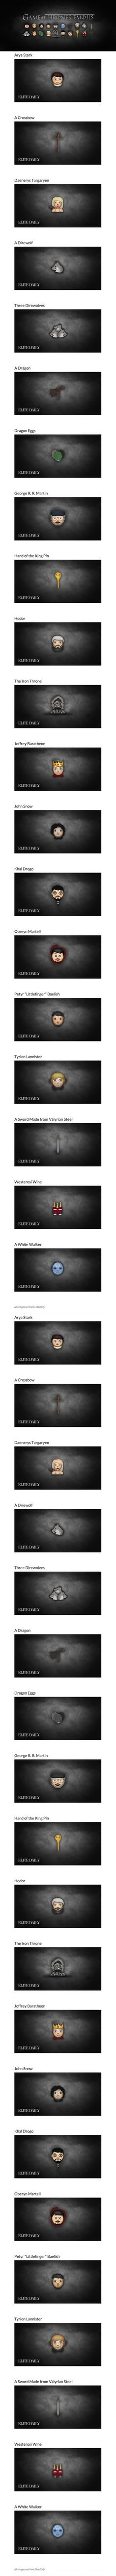 Lovely Game Of Thrones Emoji Set